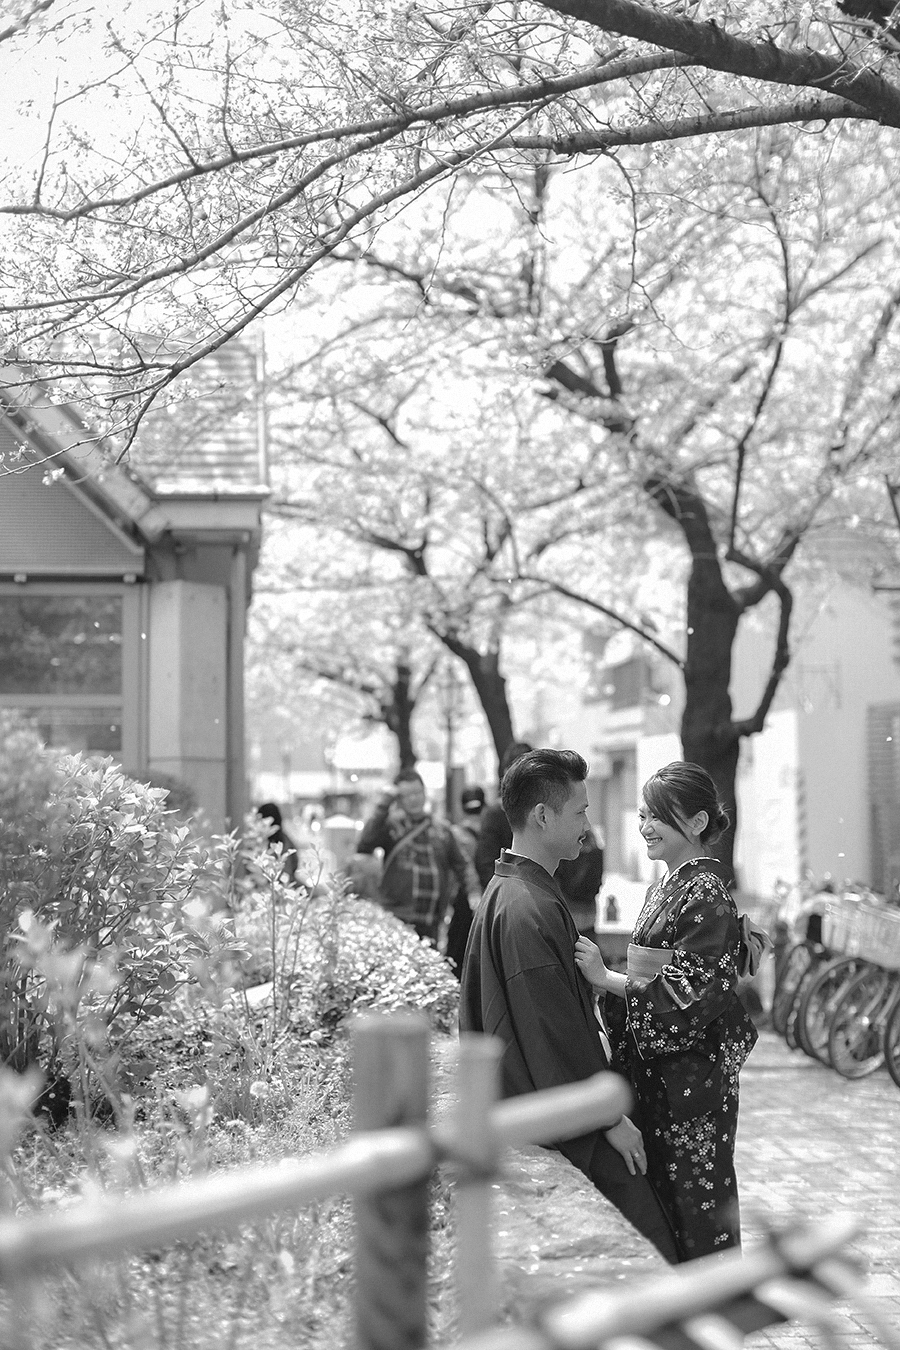 tokyo hakone japan spring sakura . engagement wedding photography by kurt ahs . ns + eu . 0409.jpg